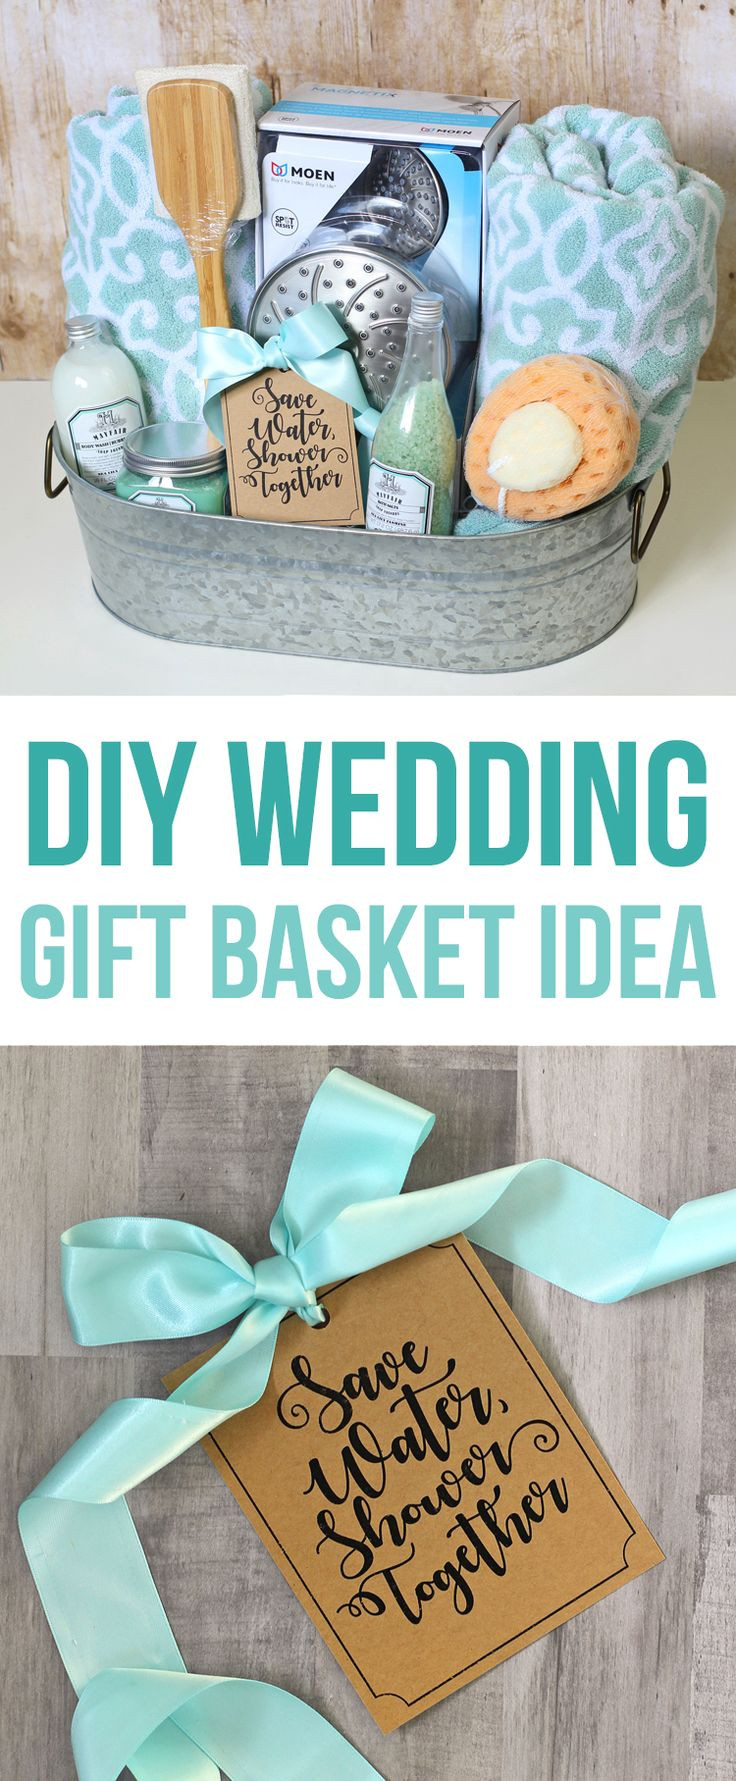 Best ideas about Ideas For A Wedding Gift . Save or Pin Best 25 Luxury shower ideas on Pinterest Now.